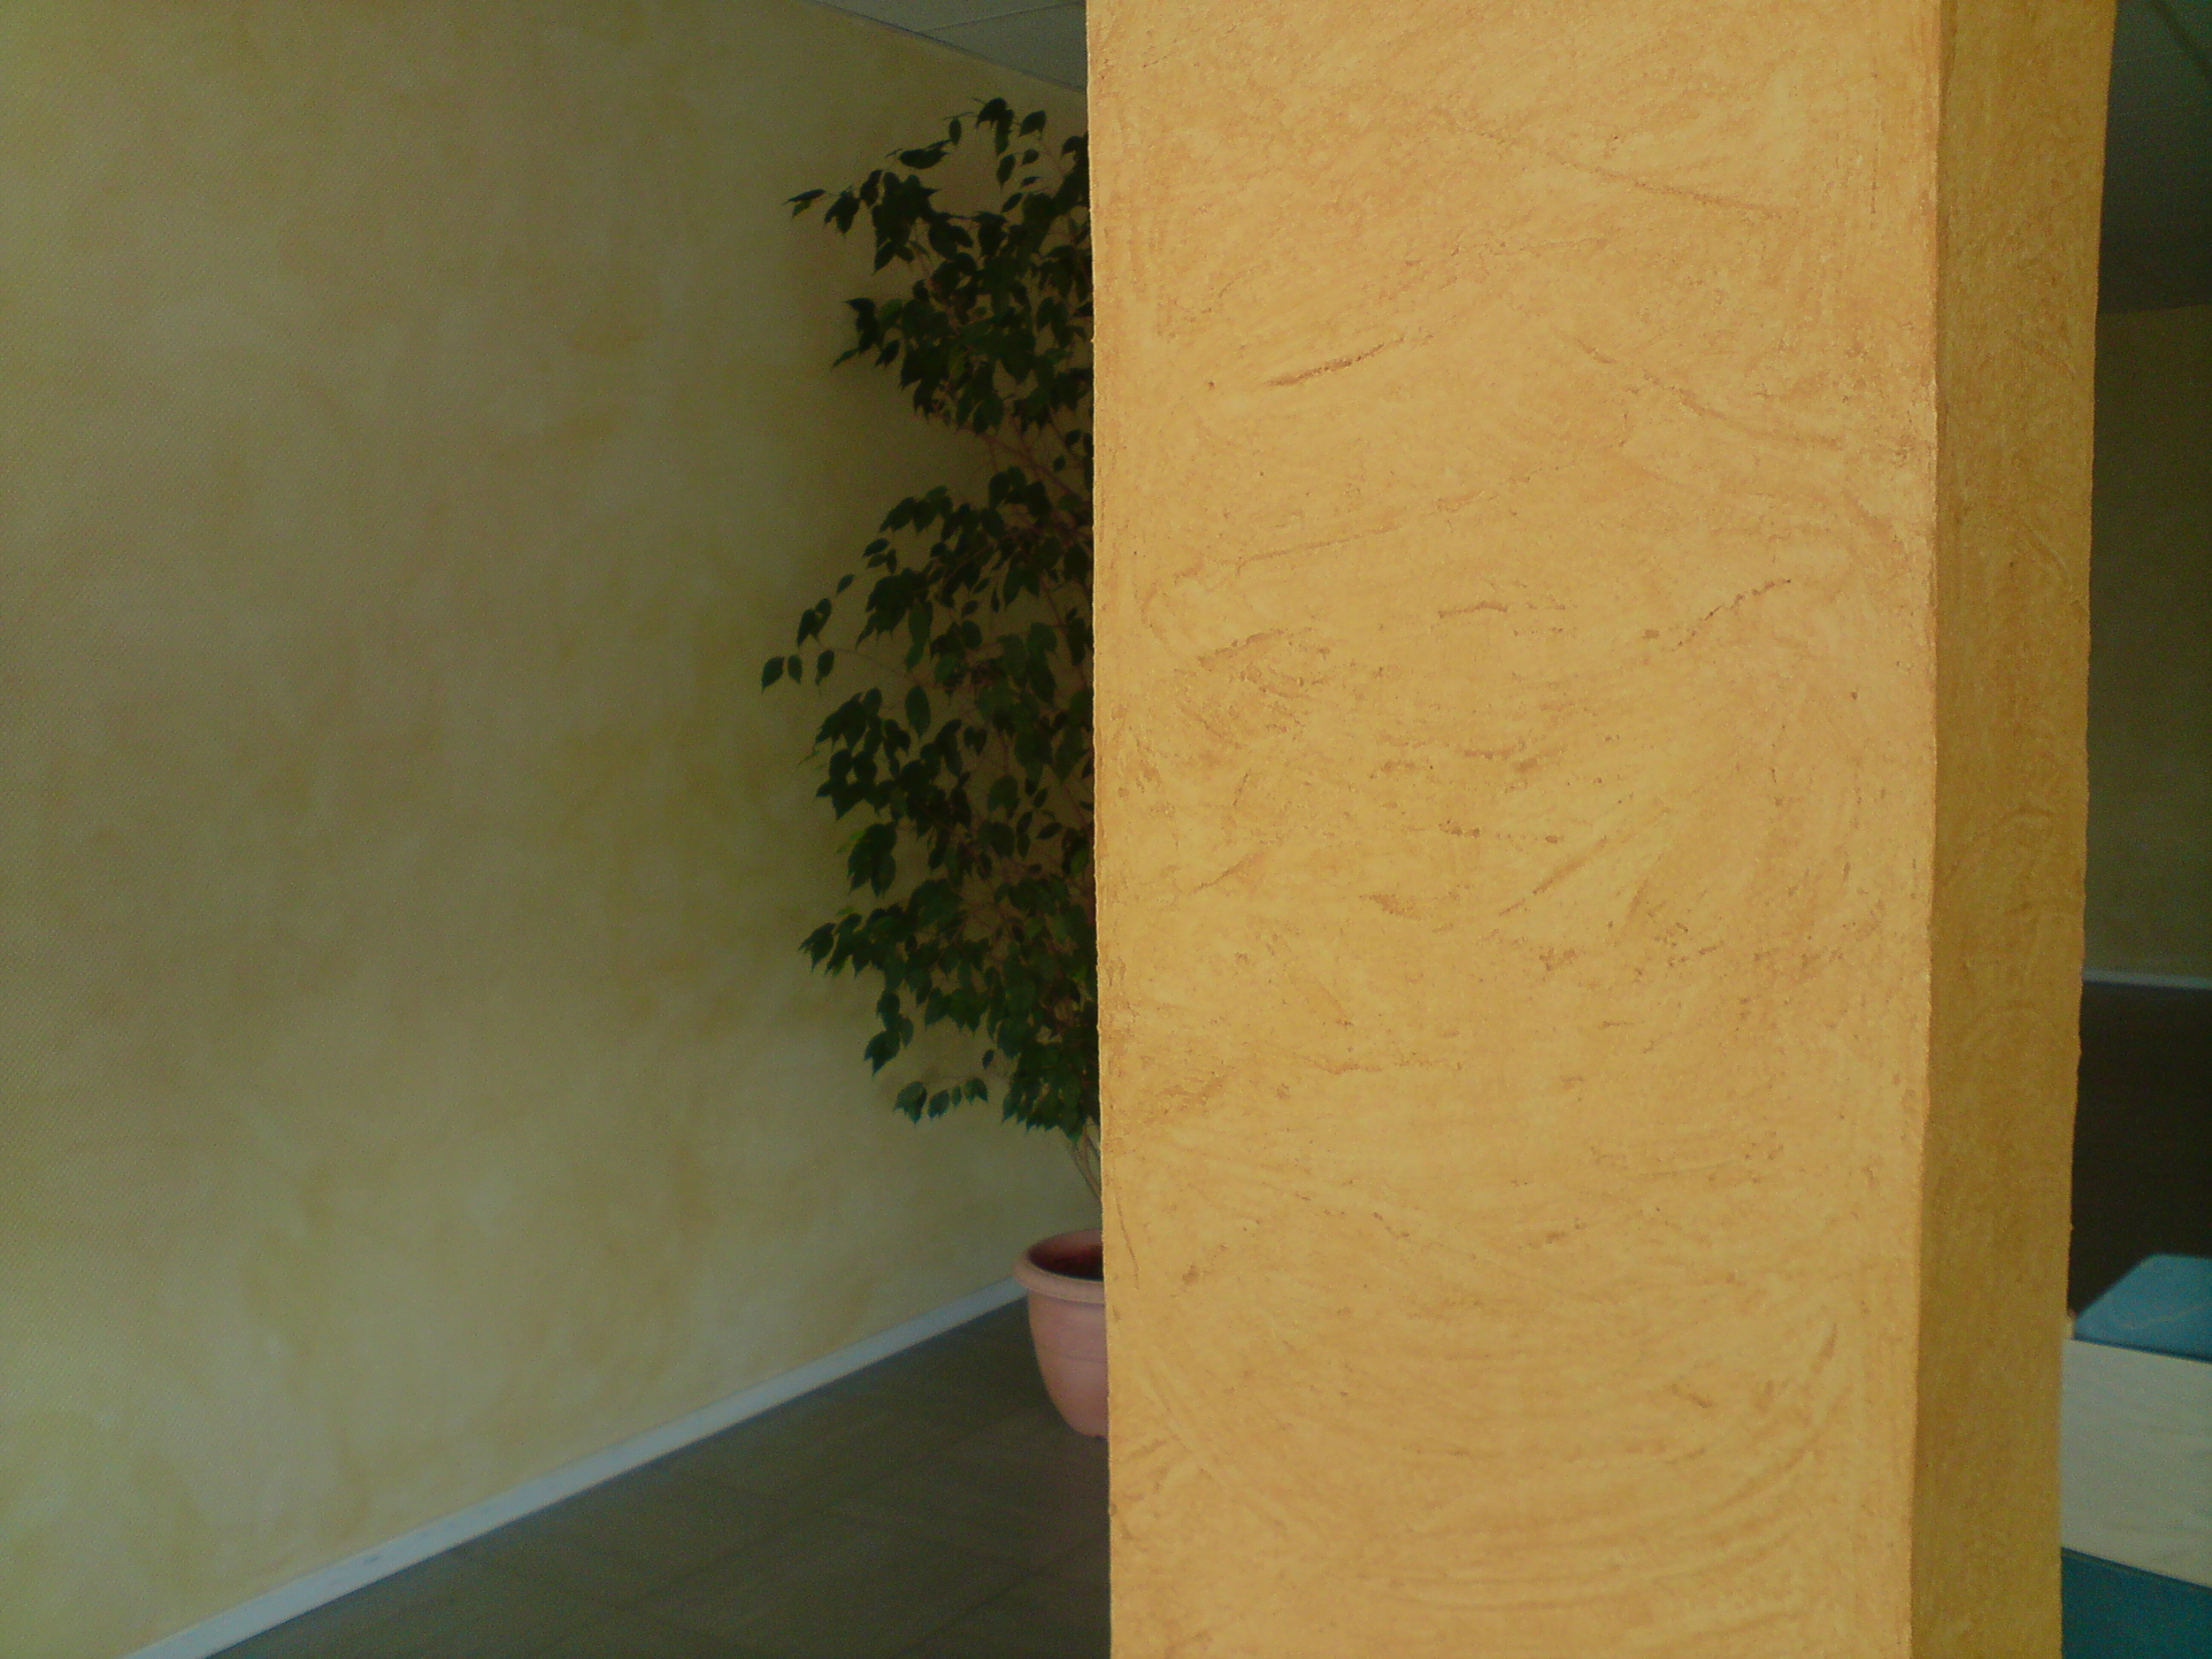 Wallpaper textured then painted on walls and columns.